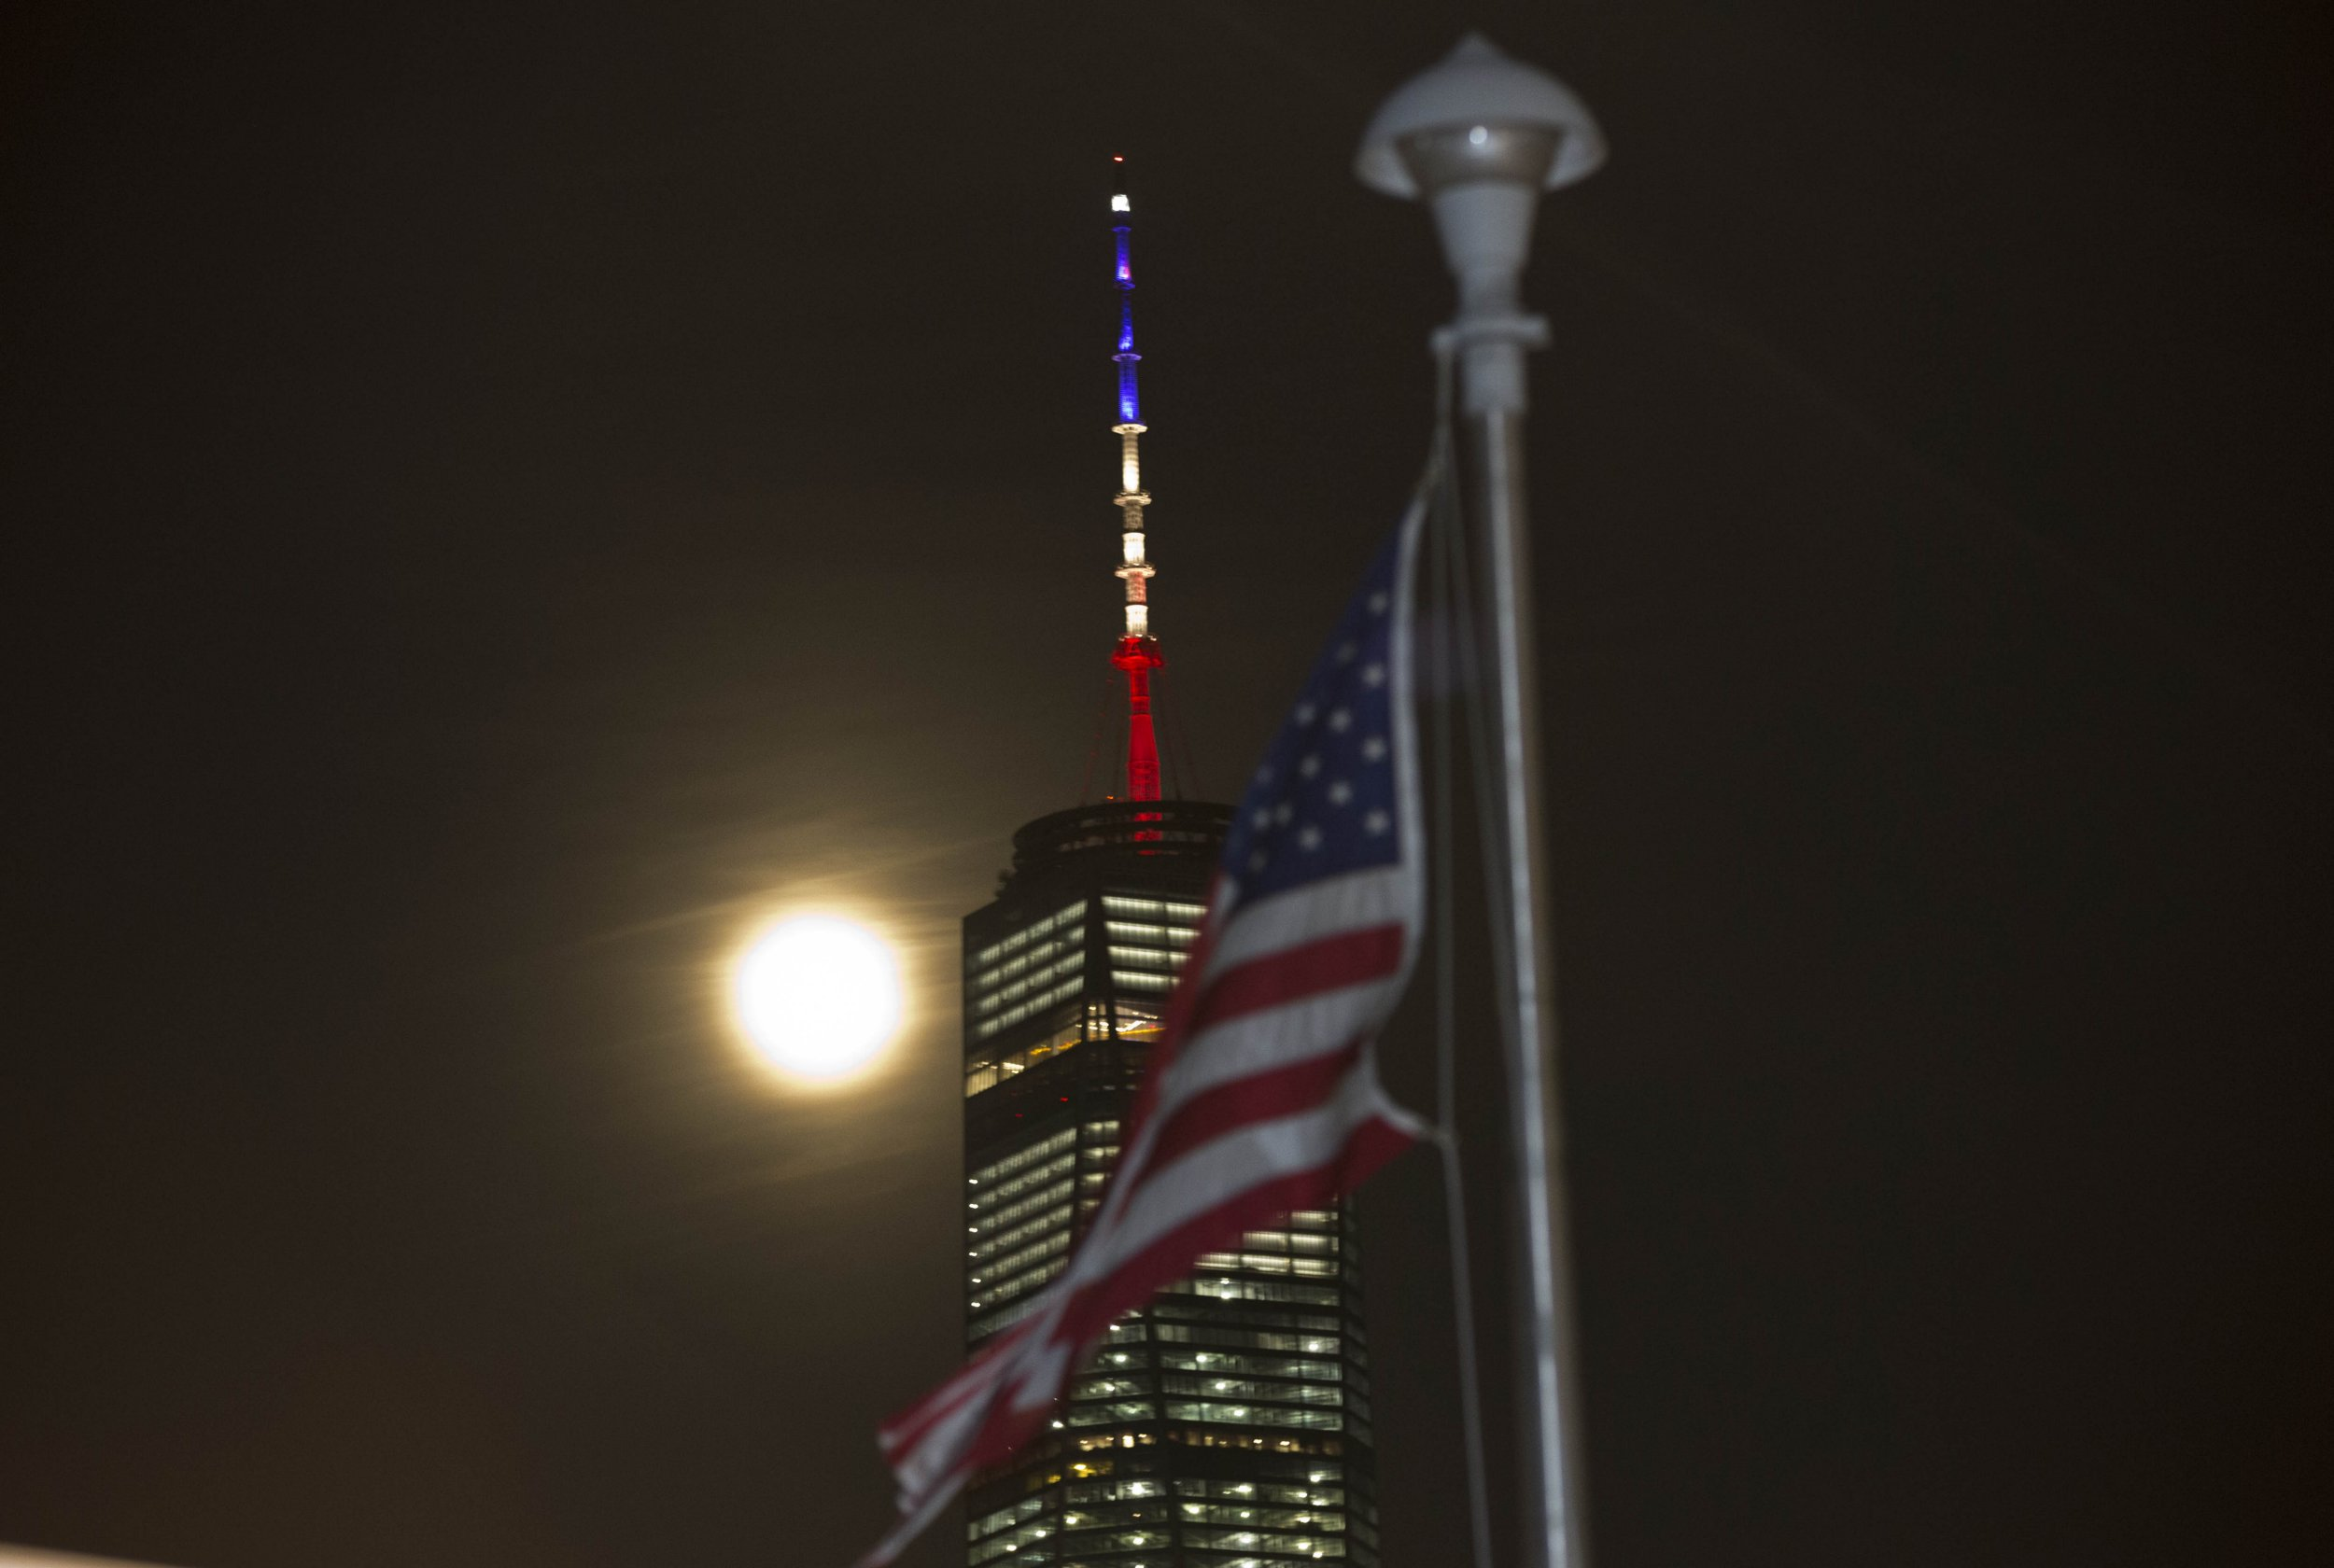 New York managed to botch its tribute to the Brussels attacks victims last night